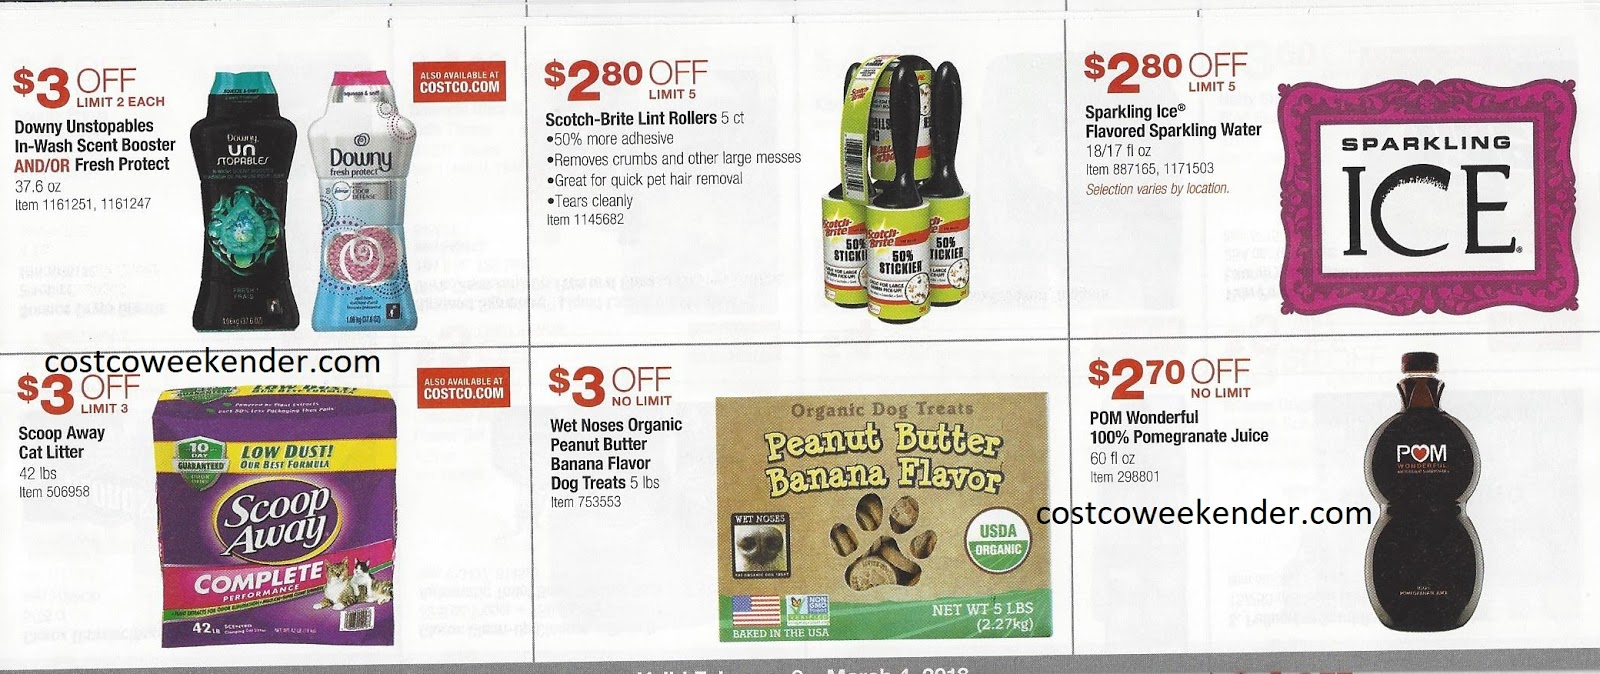 Sams coupon book february 2018